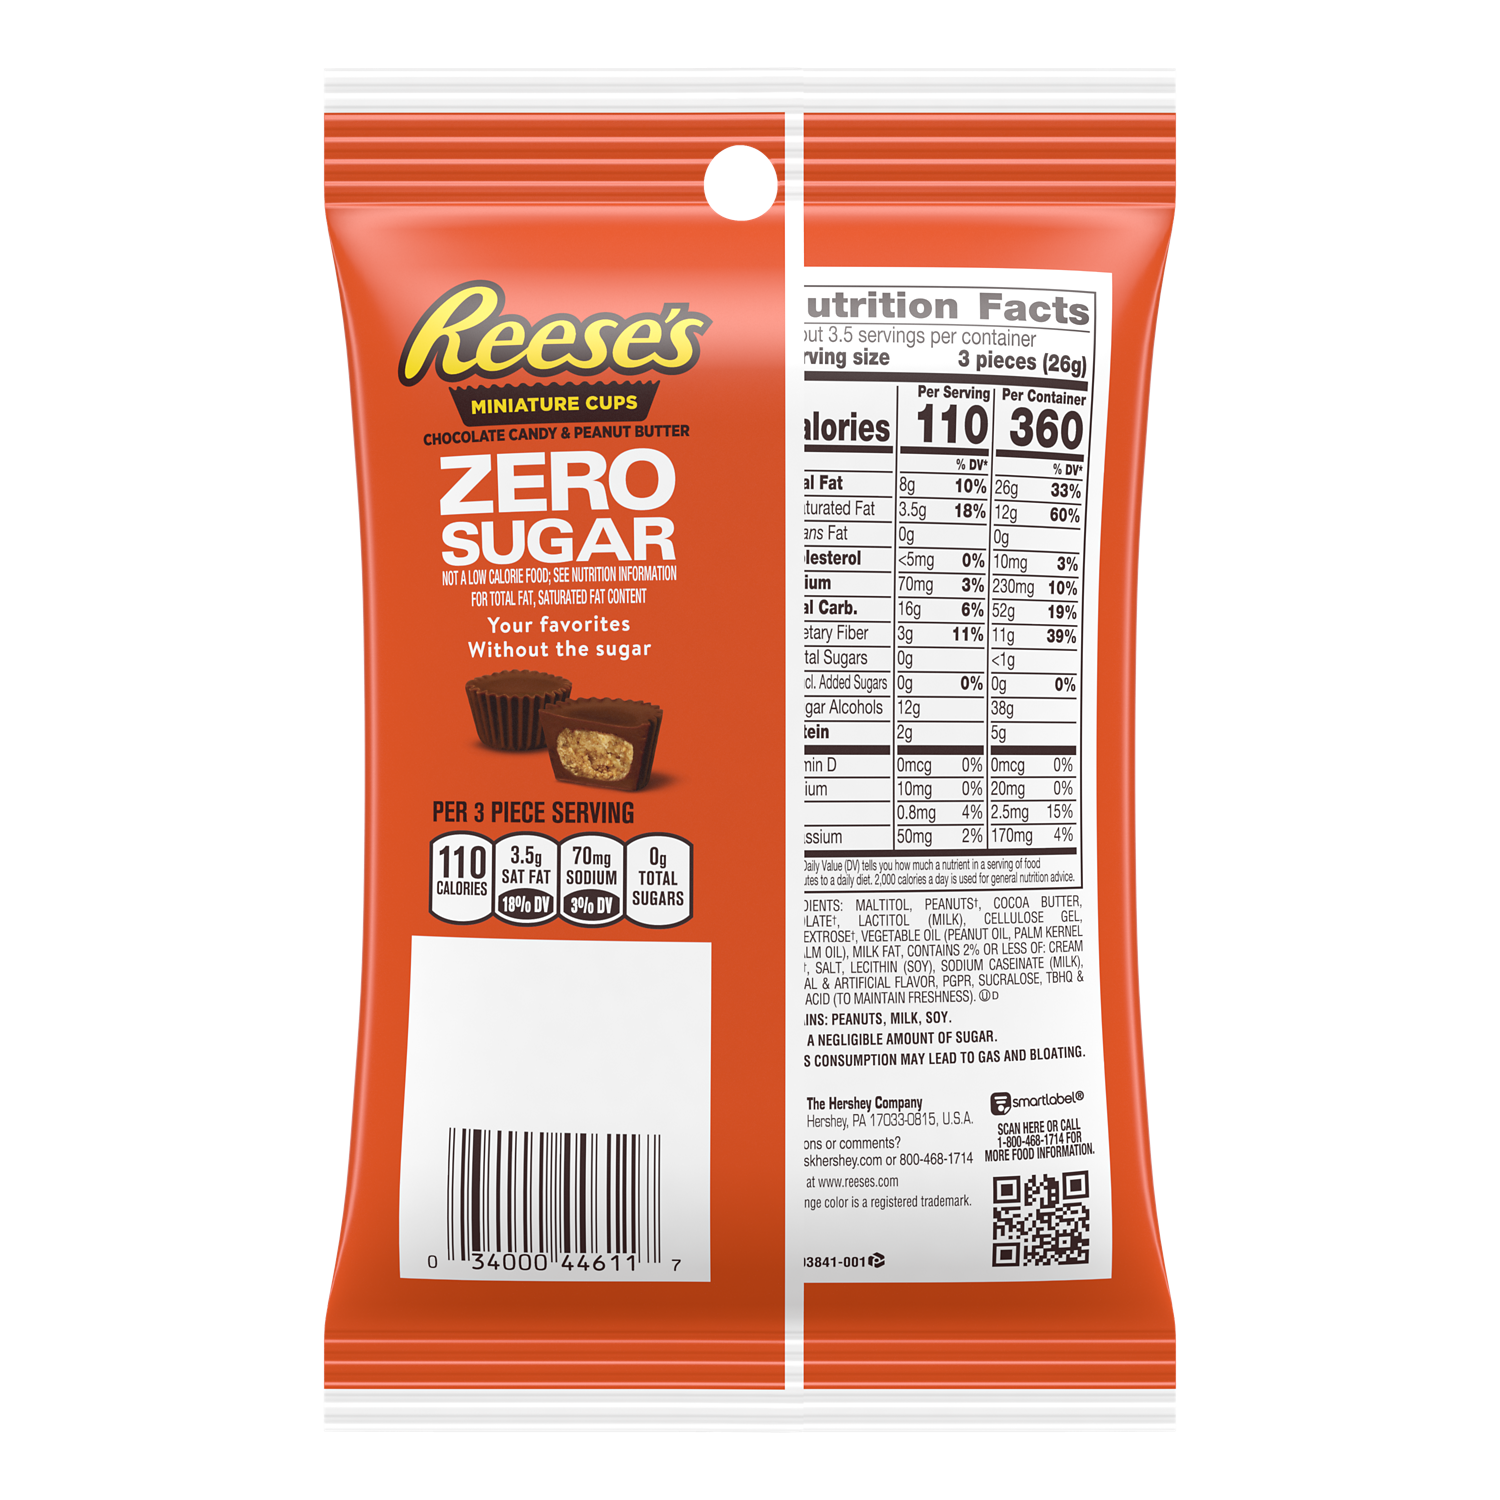 REESE'S Zero Sugar Miniatures Chocolate Candy Peanut Butter Cups, 3 oz bag - Back of Package